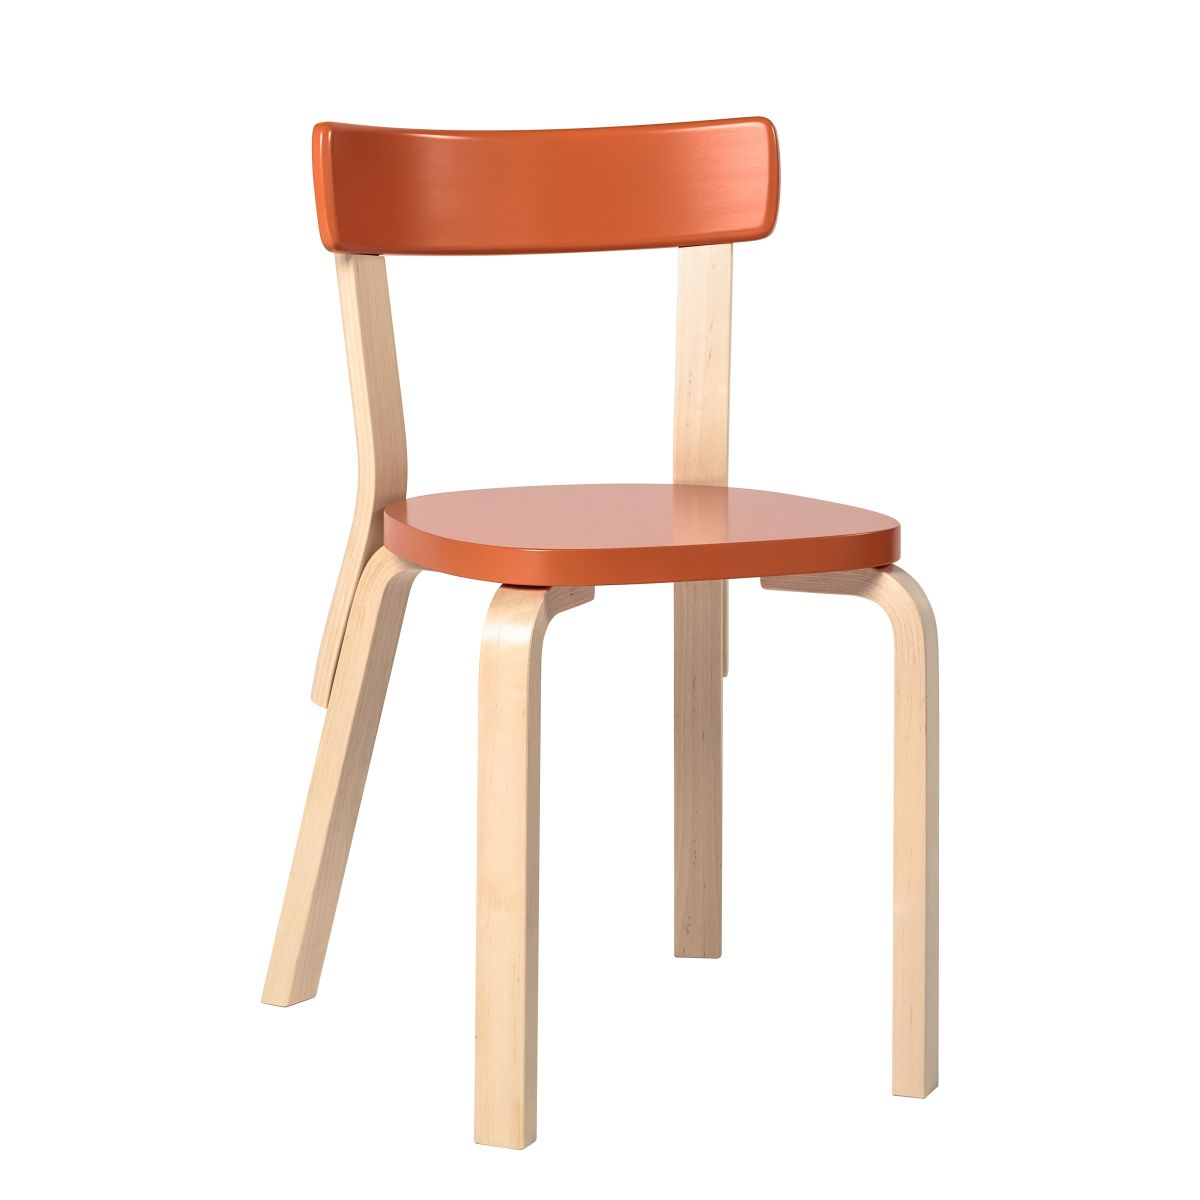 Chair-69-Orange-Lacquer-Seat